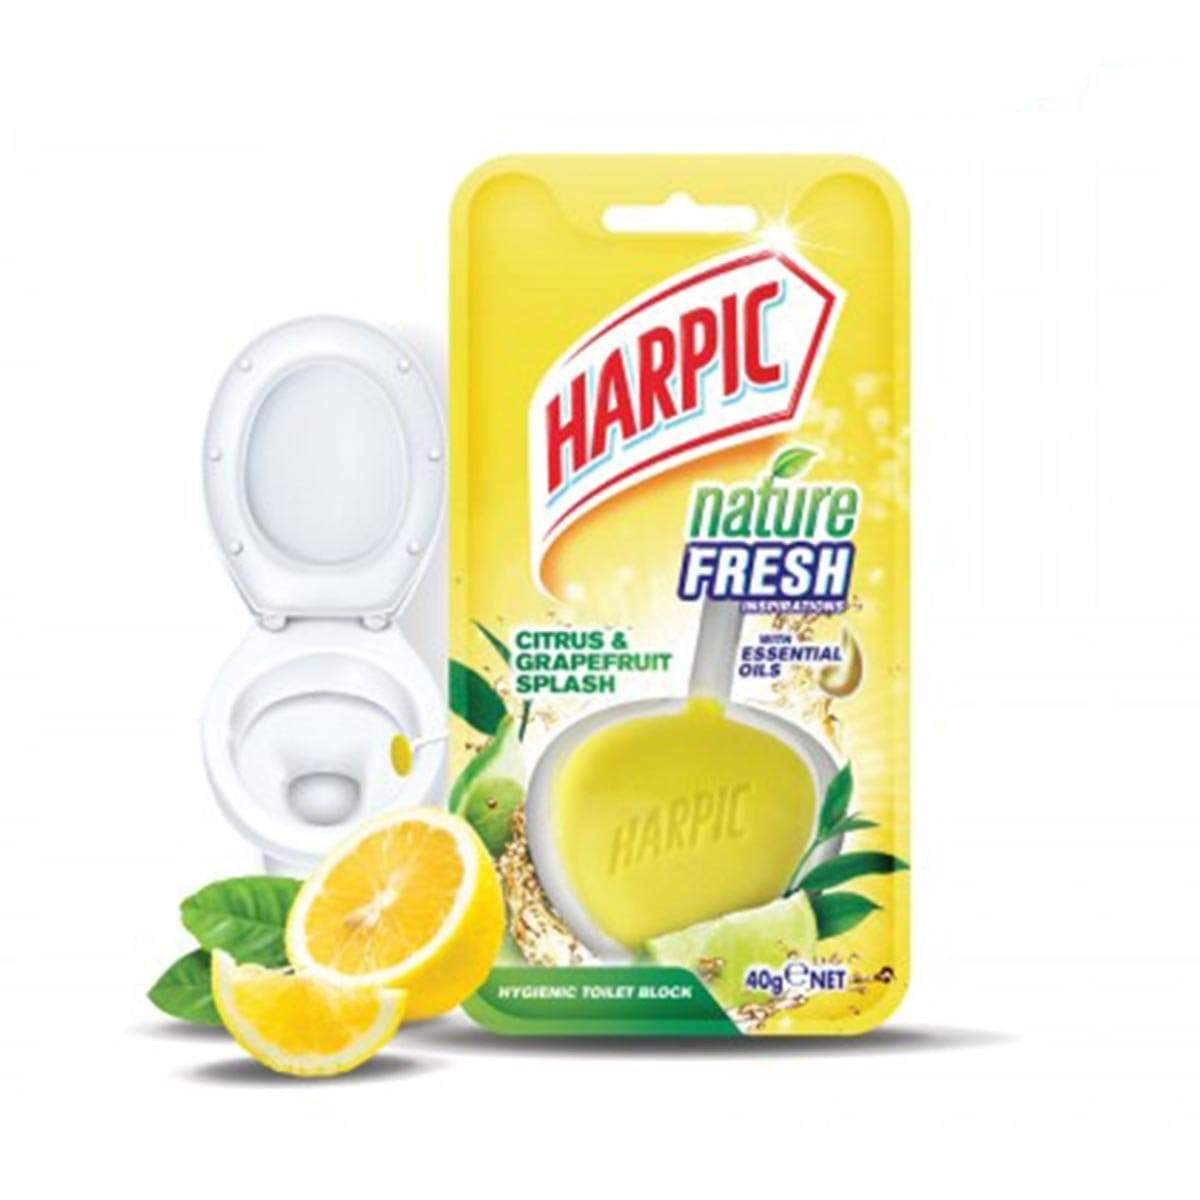 Harpic Nature Fresh (40g) - Citrus & Grapefruit Splash